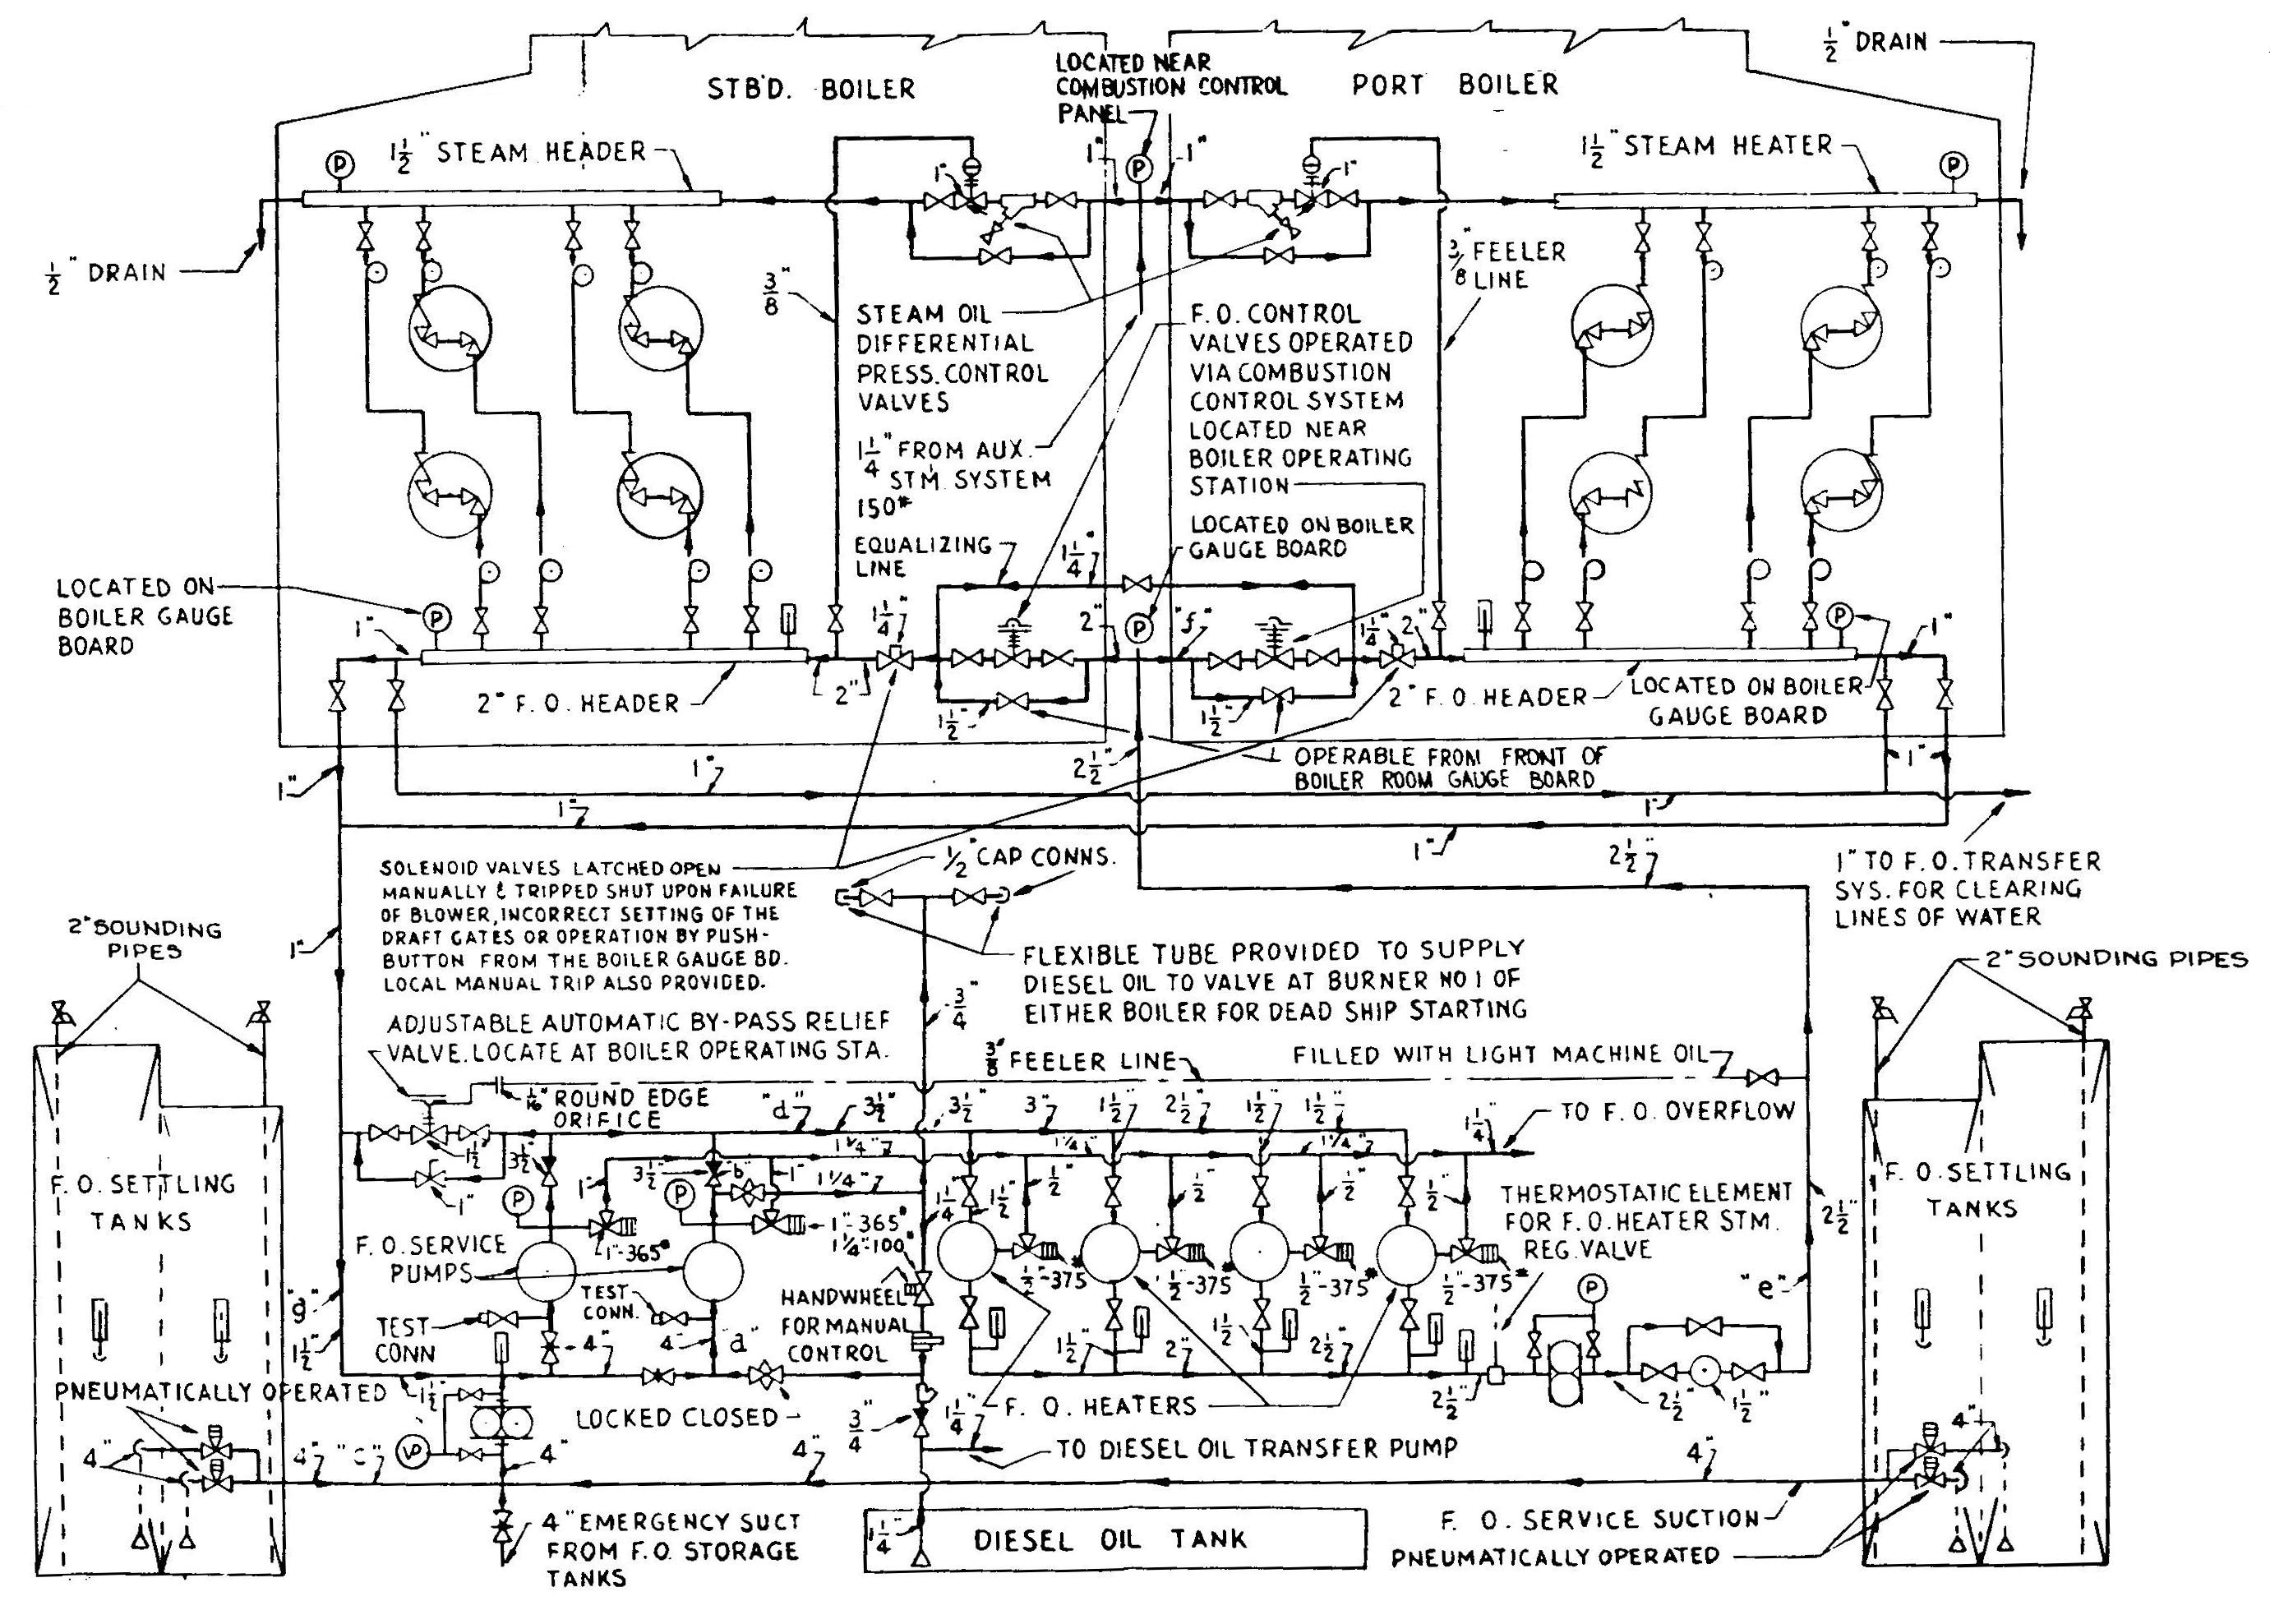 piping layout pictures image result for piping layout oil  with images  layout  boiler  image result for piping layout oil